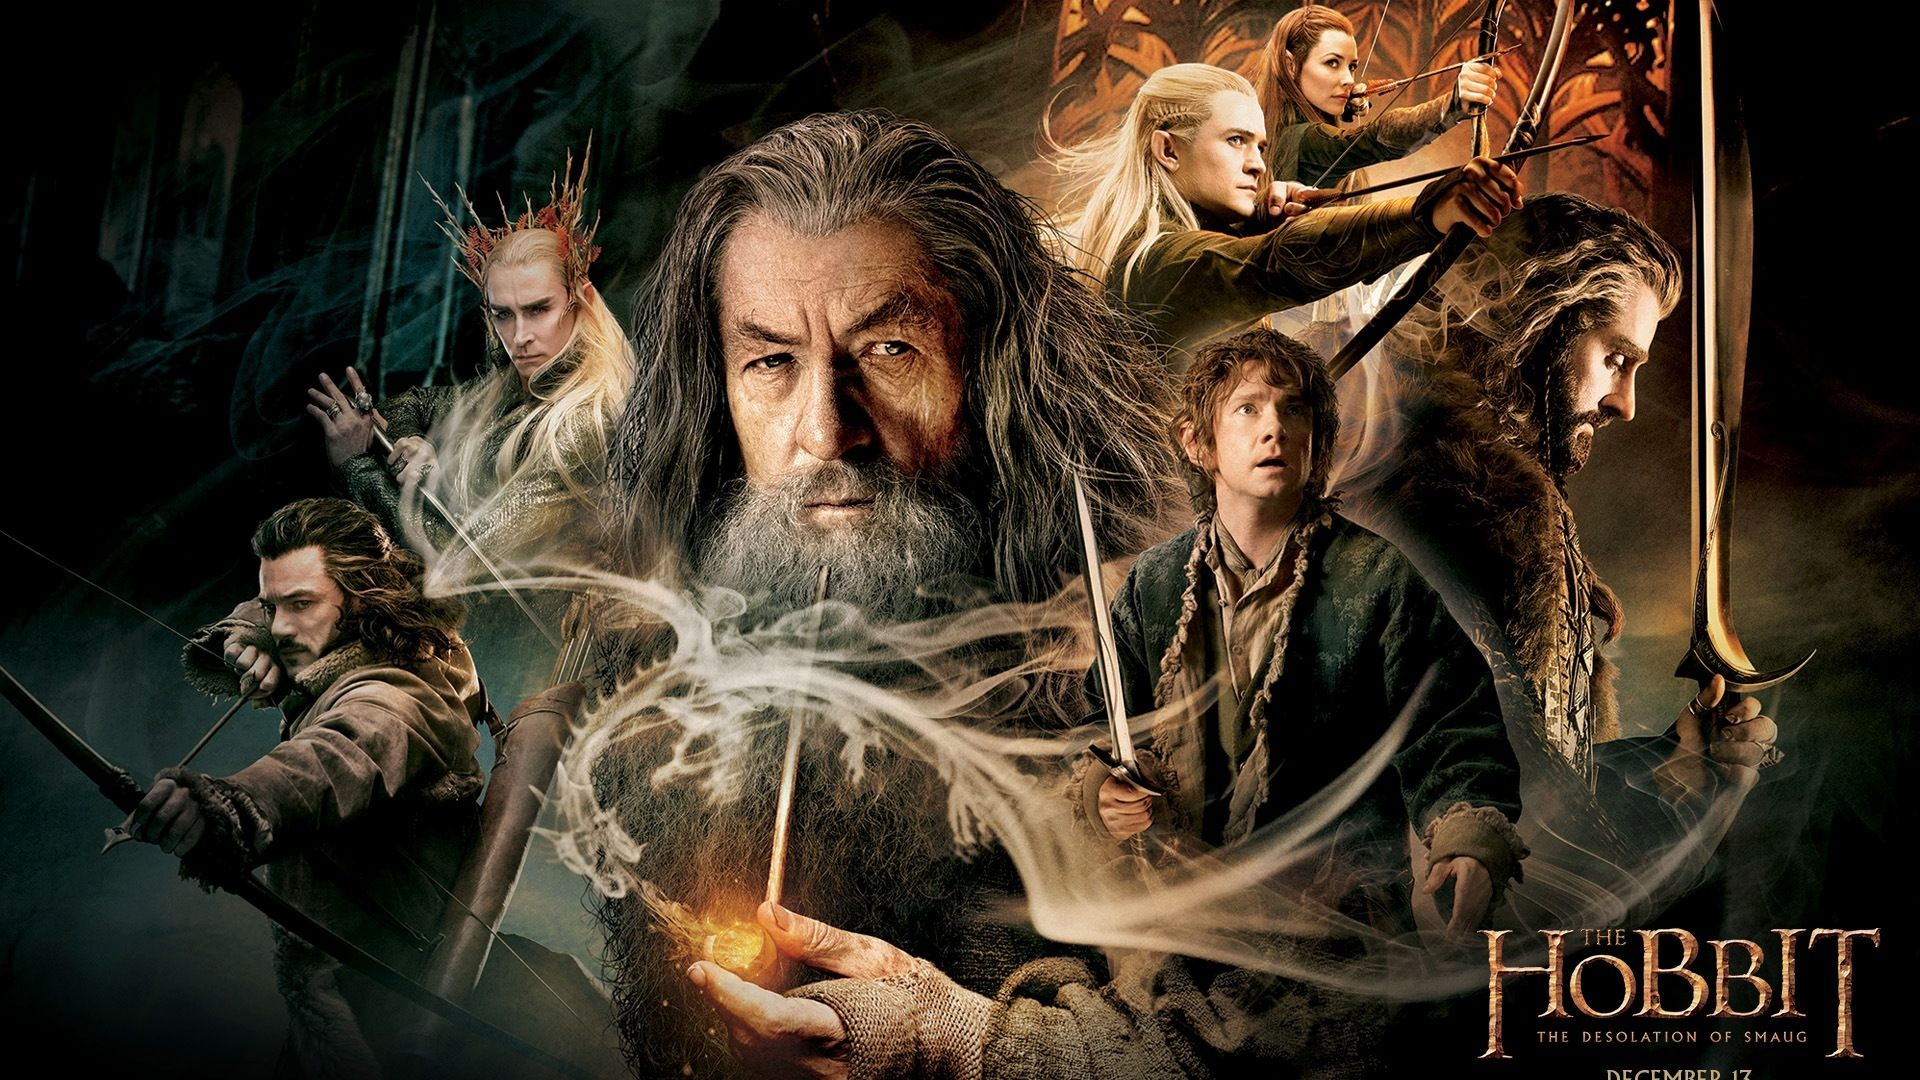 Download Wallpaper 1920x1080 The Hobbit The Desolation Of Smaug